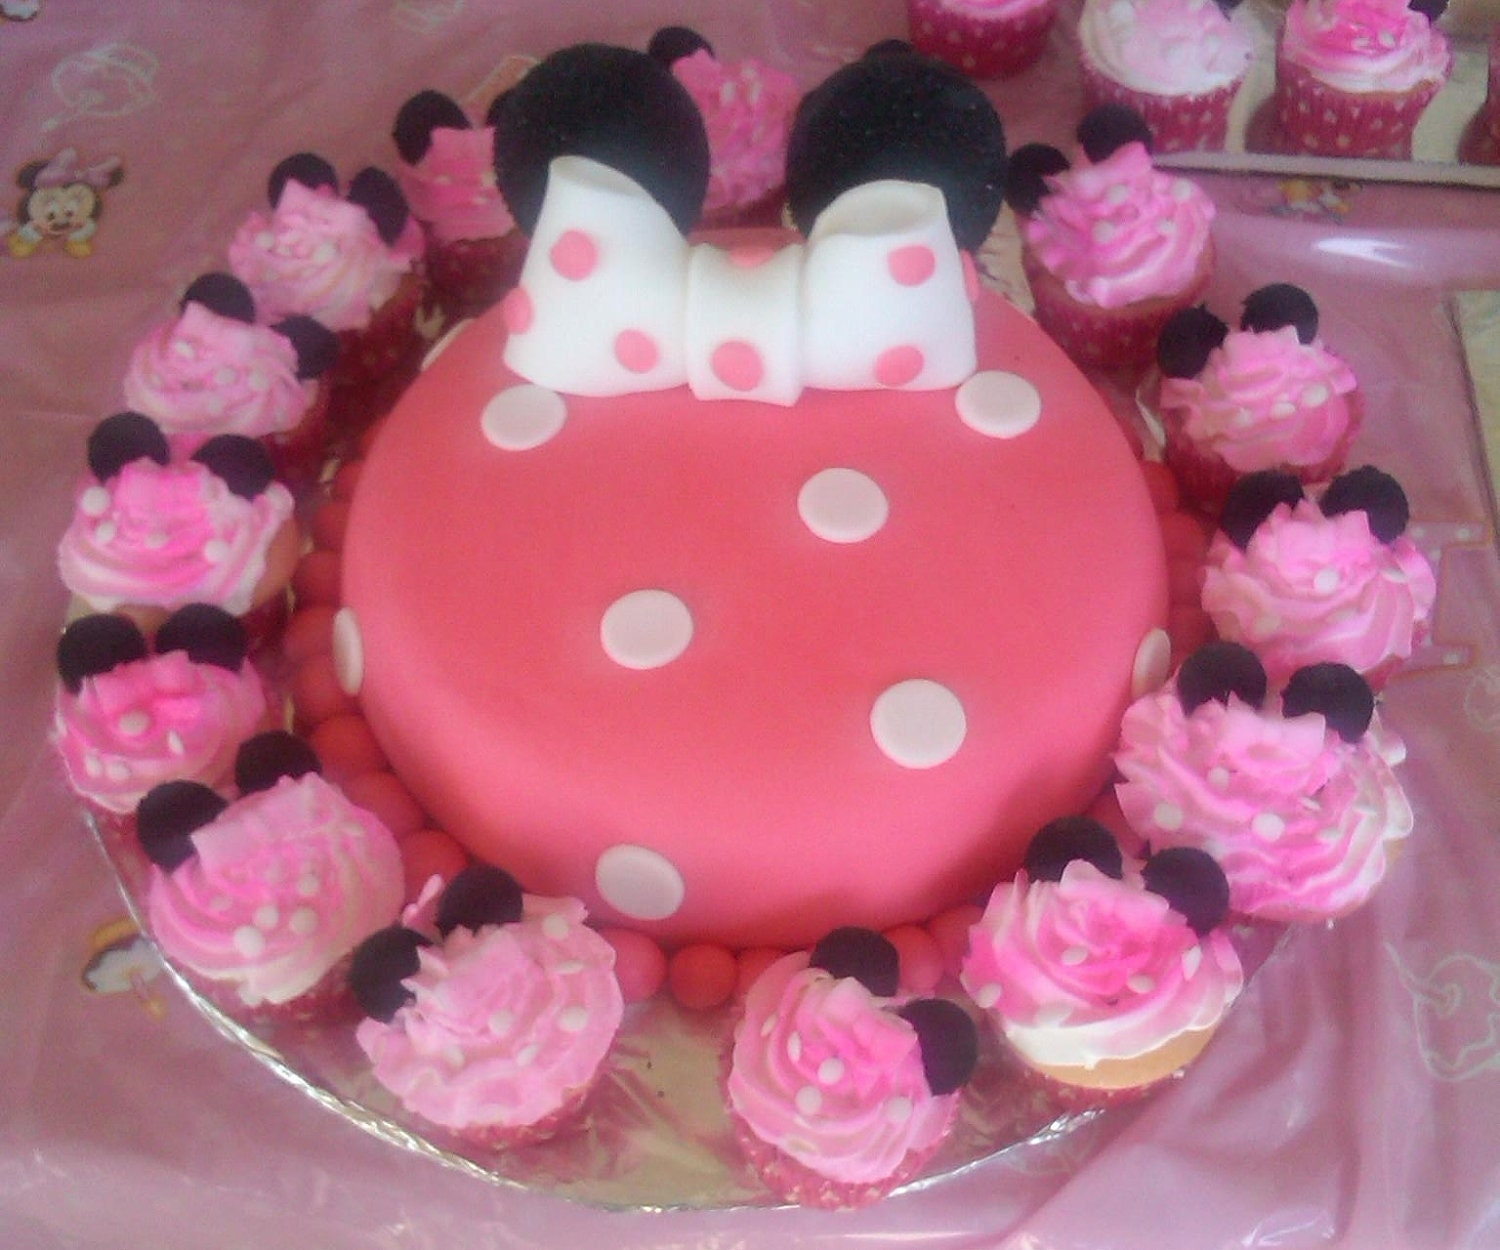 Minnie Mouse Cake Topper Images : Items similar to Minnie Mouse Cake Topper on Etsy